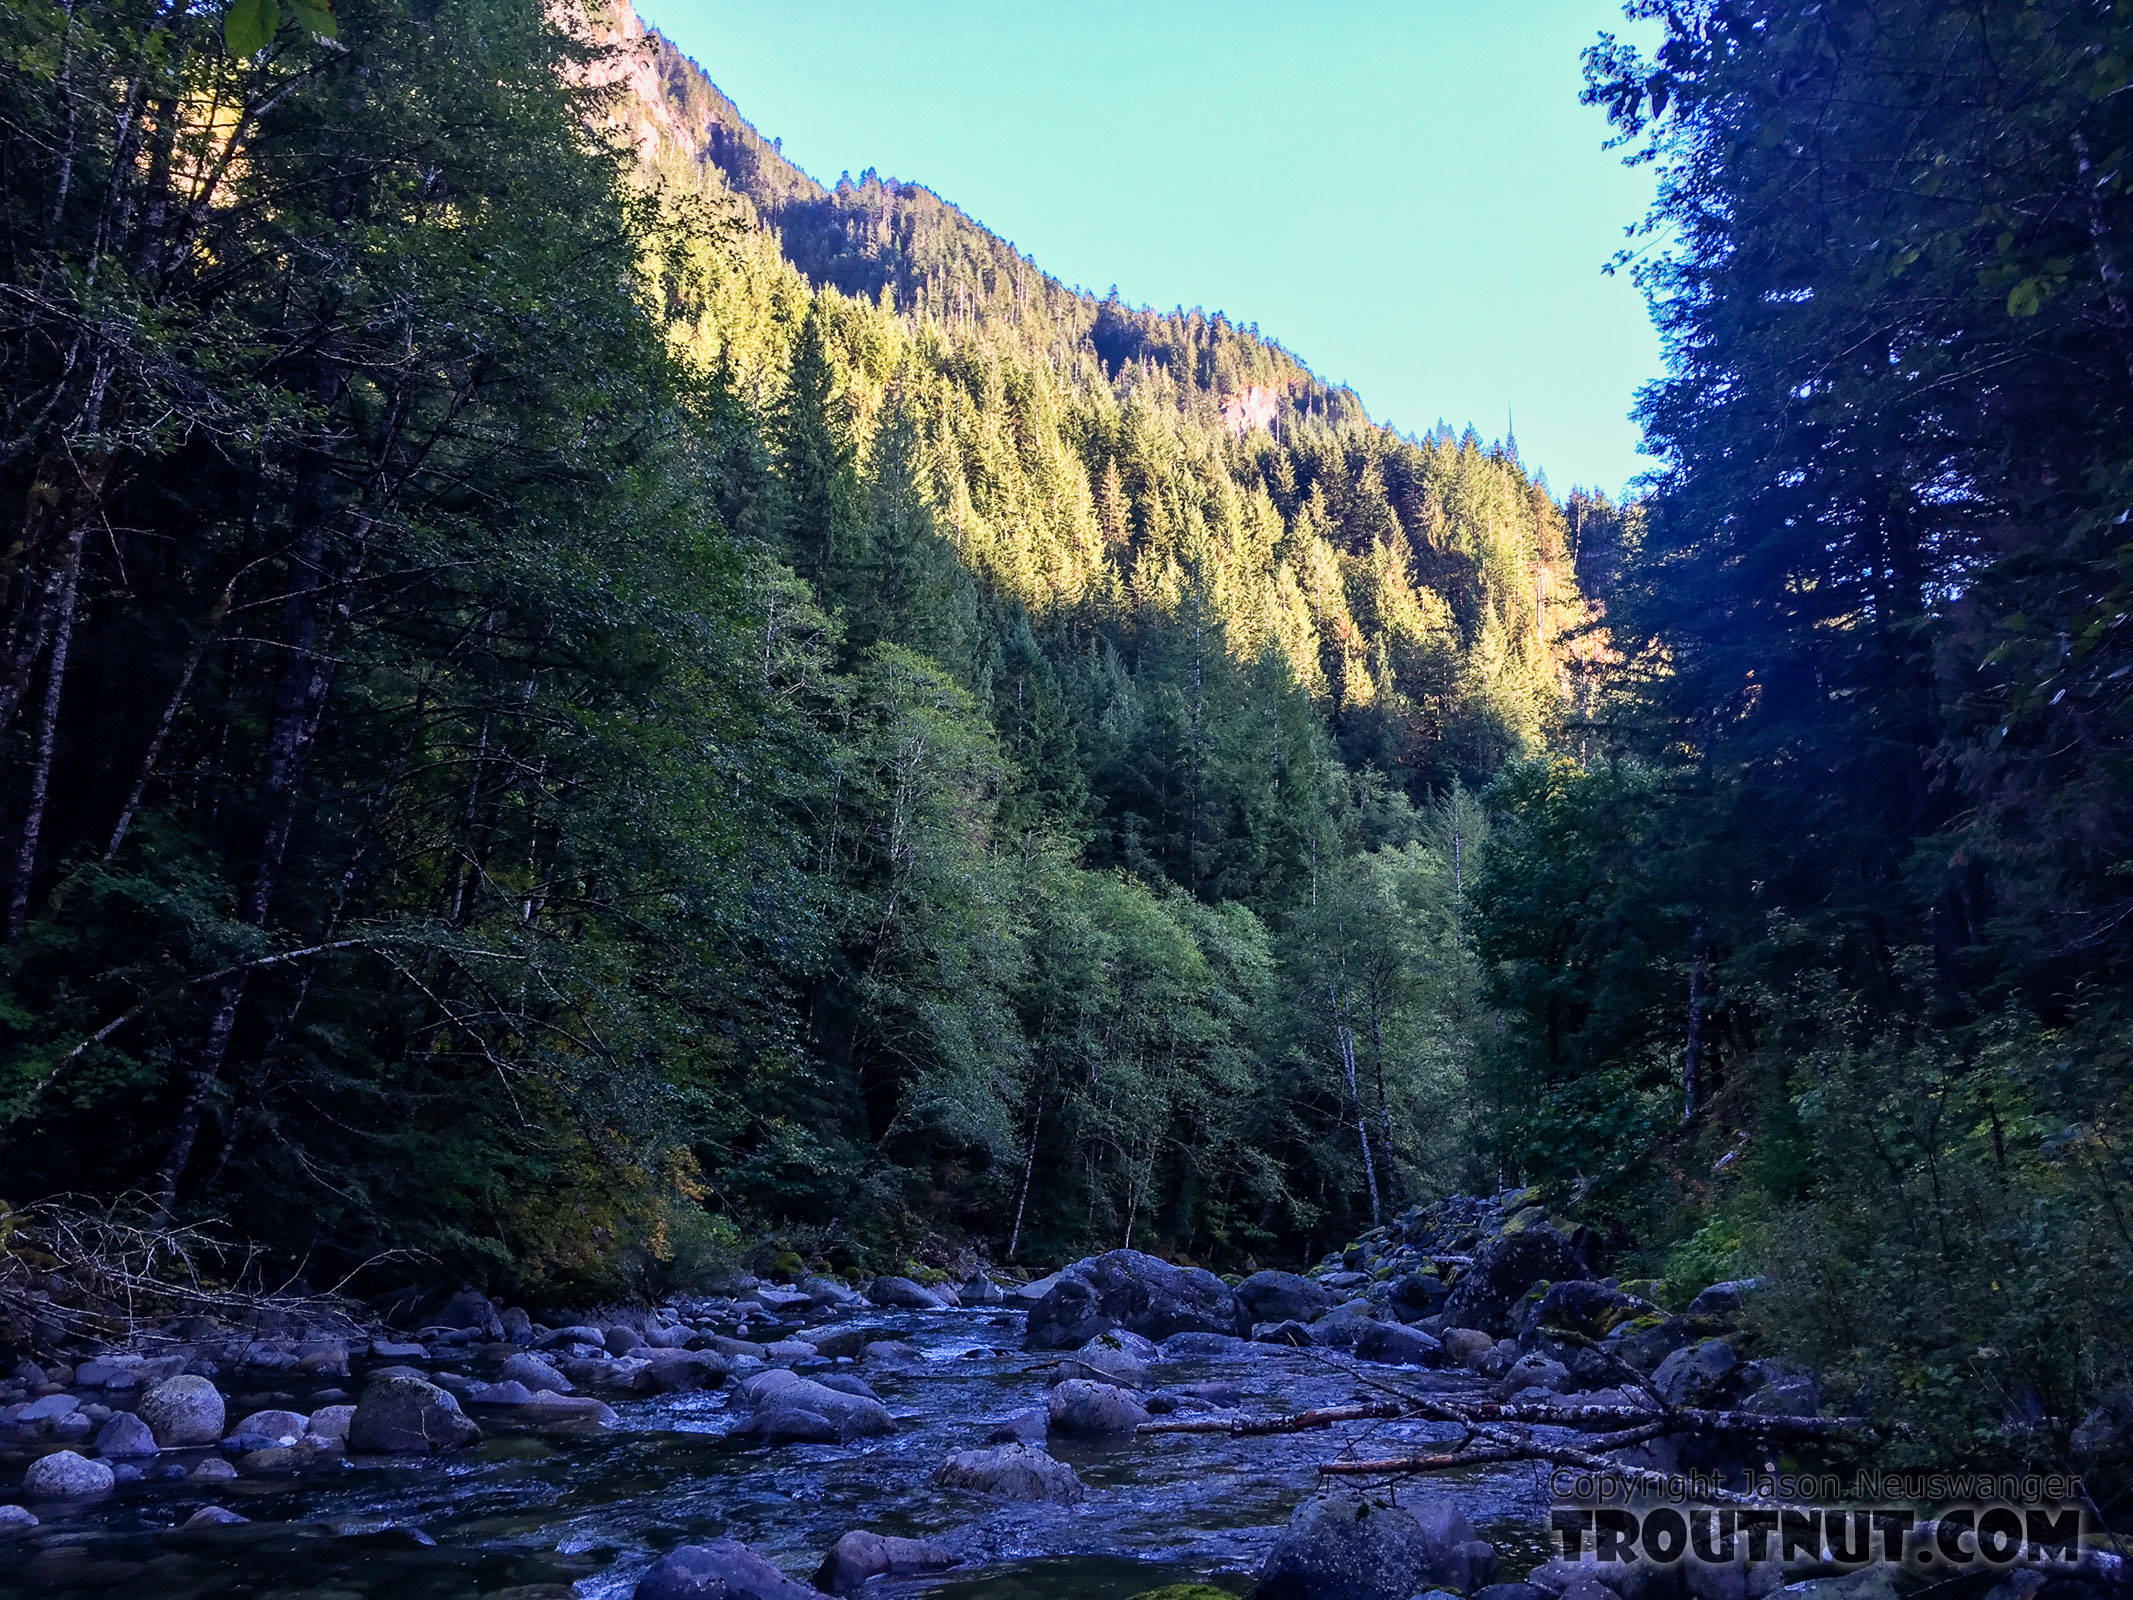 From the Taylor River in Washington.